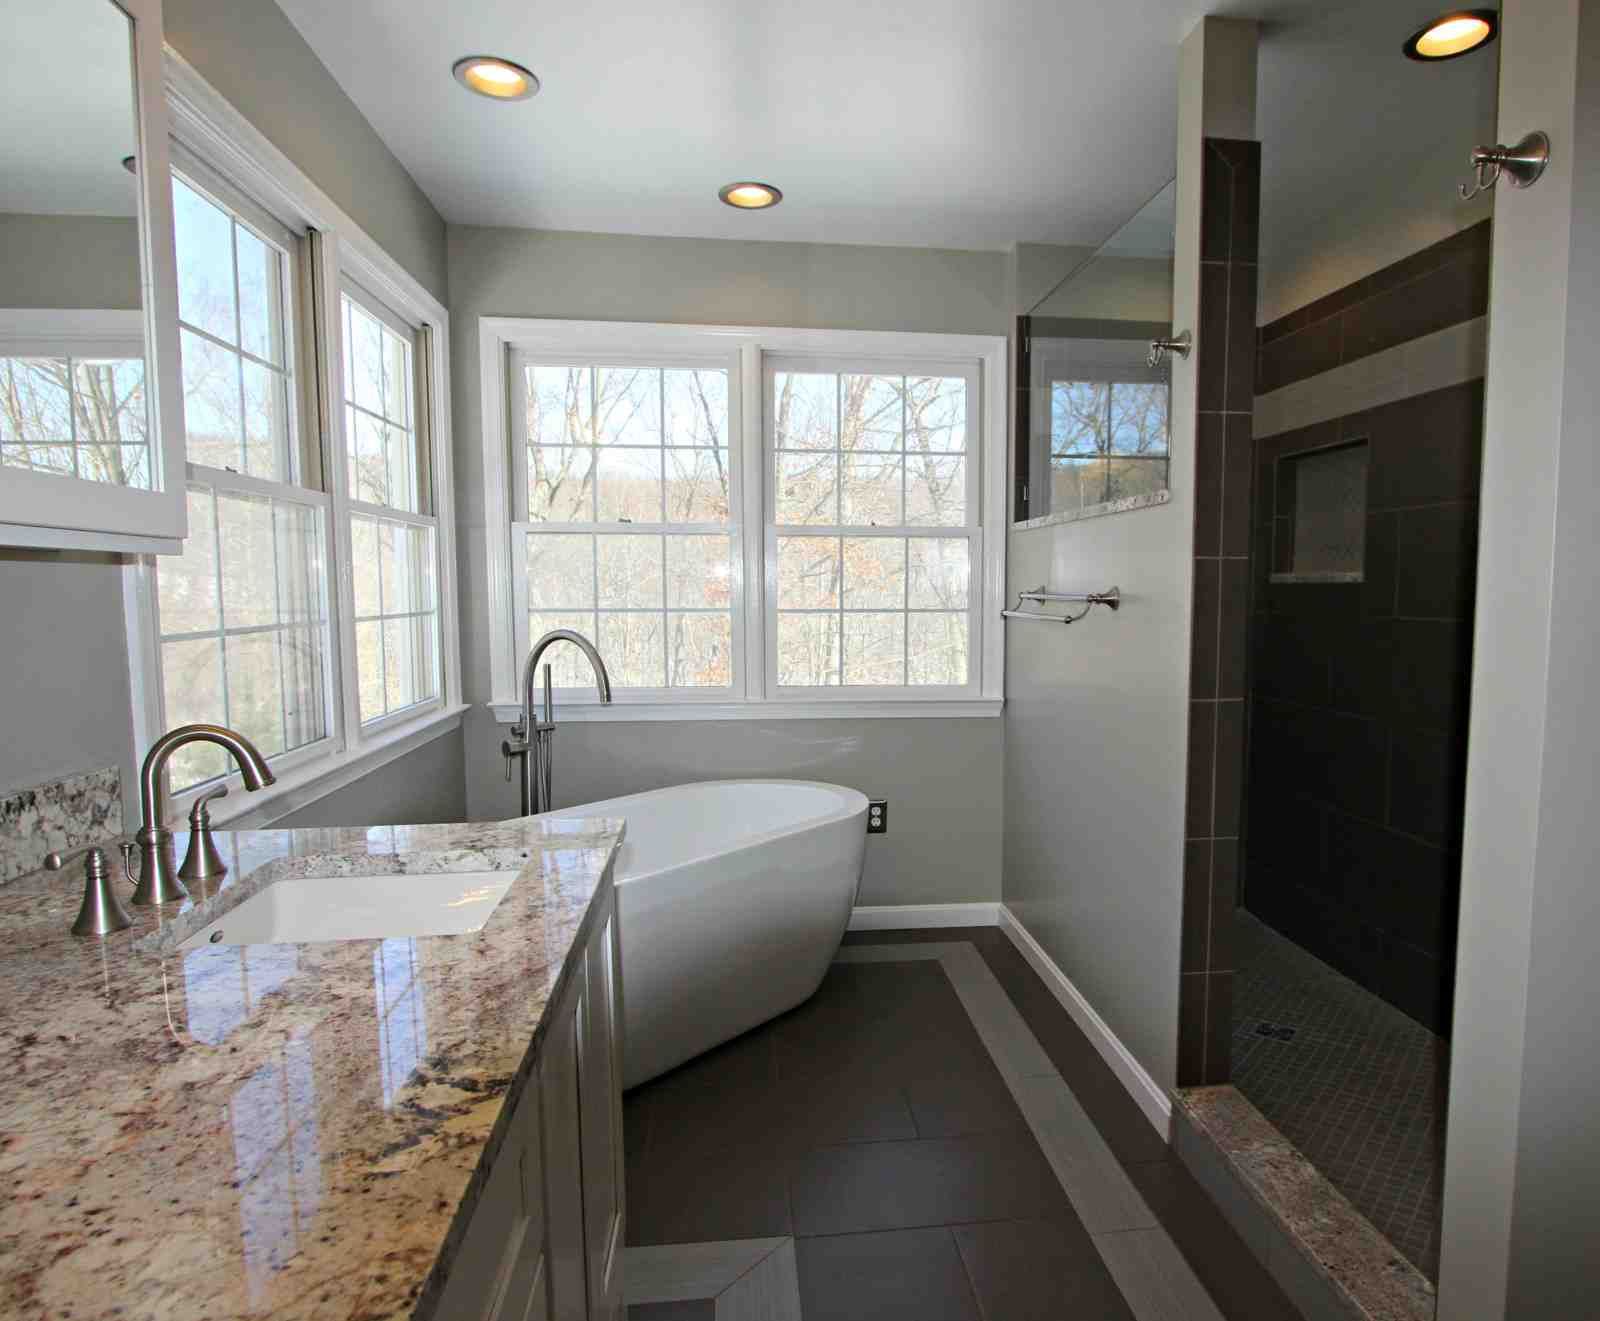 Our Bathroom Remodeling Professionals